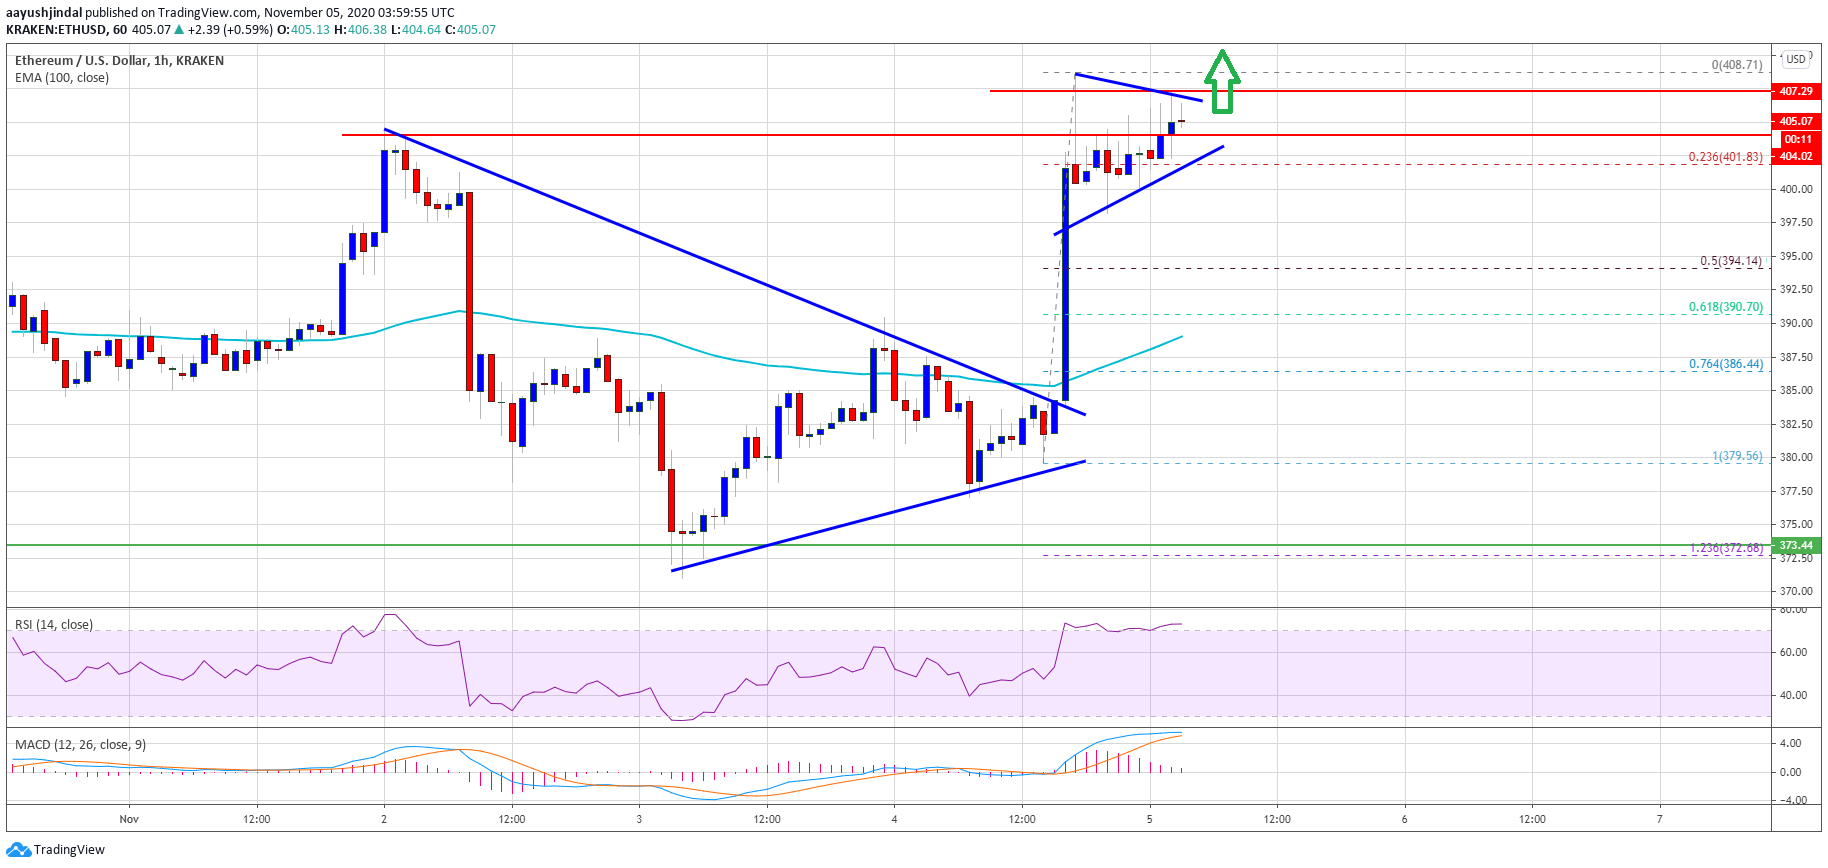 TA: Ethereum Prints Bullish Breakout, A Strengthening Case For $425